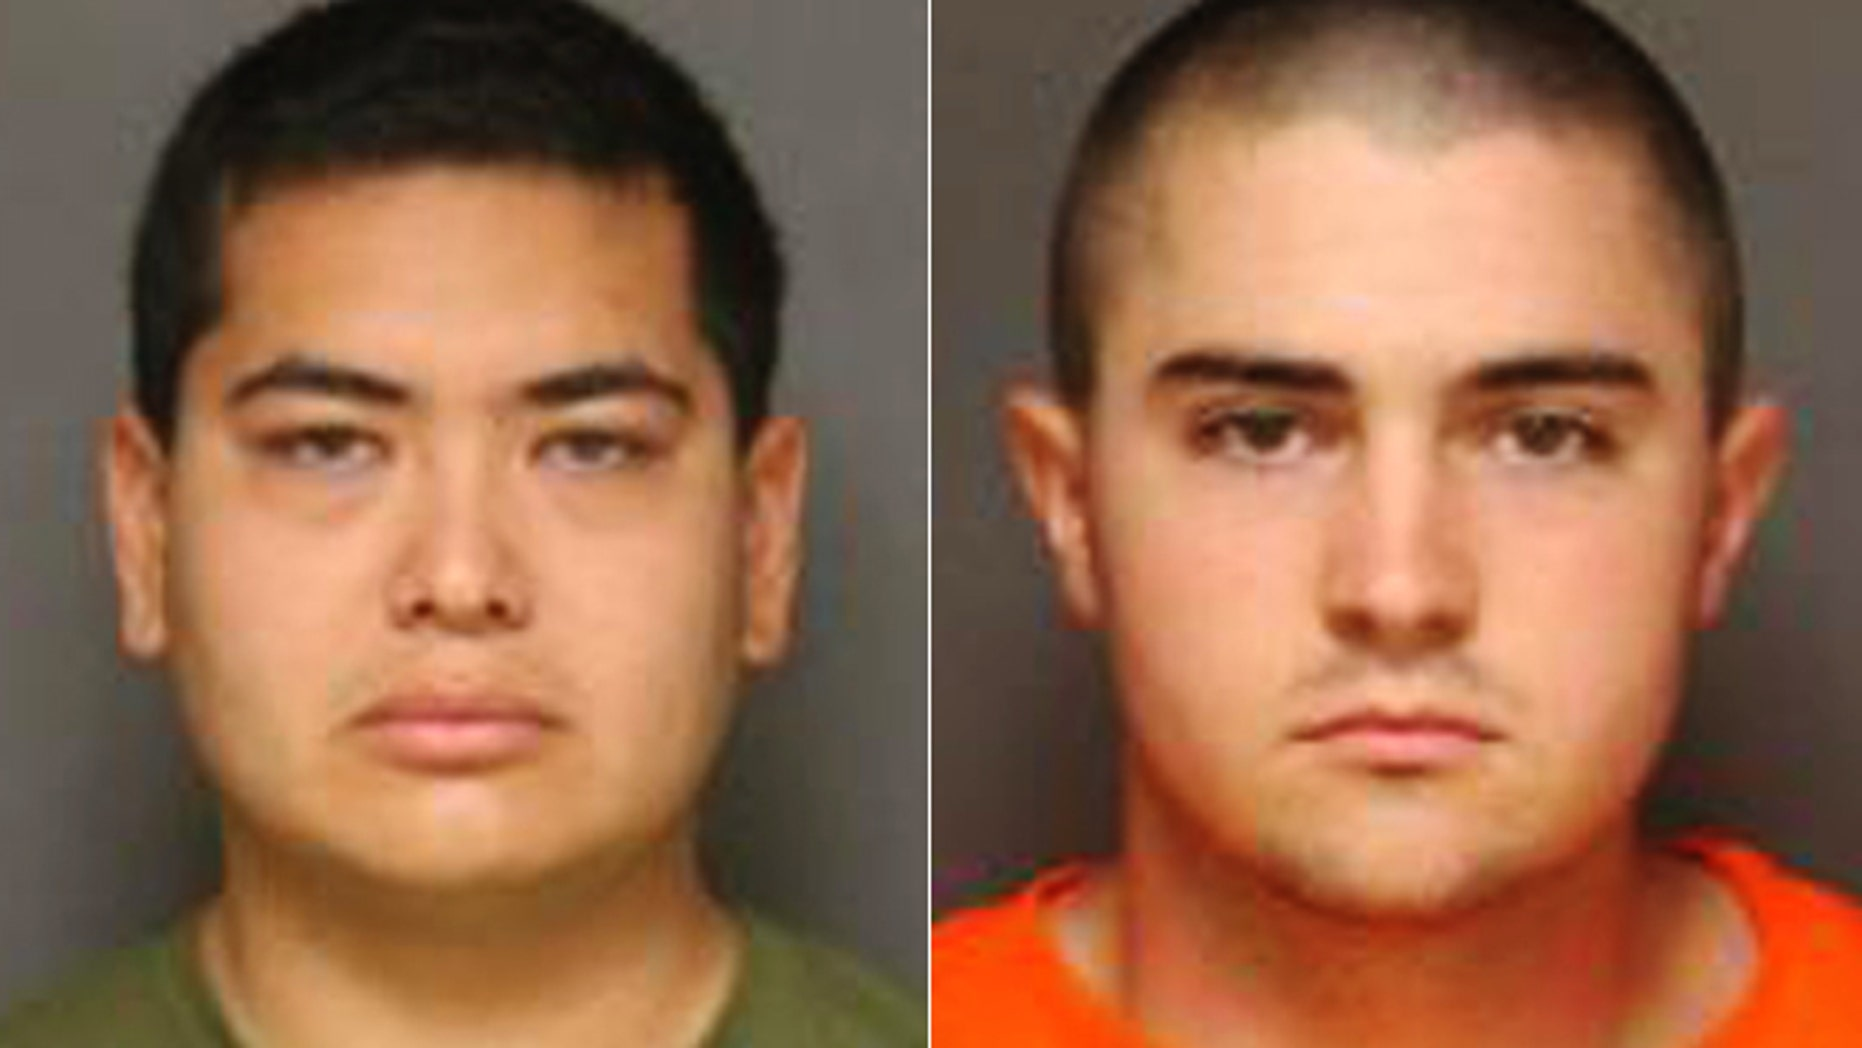 Police arrested Frank Felix, left, and Joshua Acosta in connection with the killings.